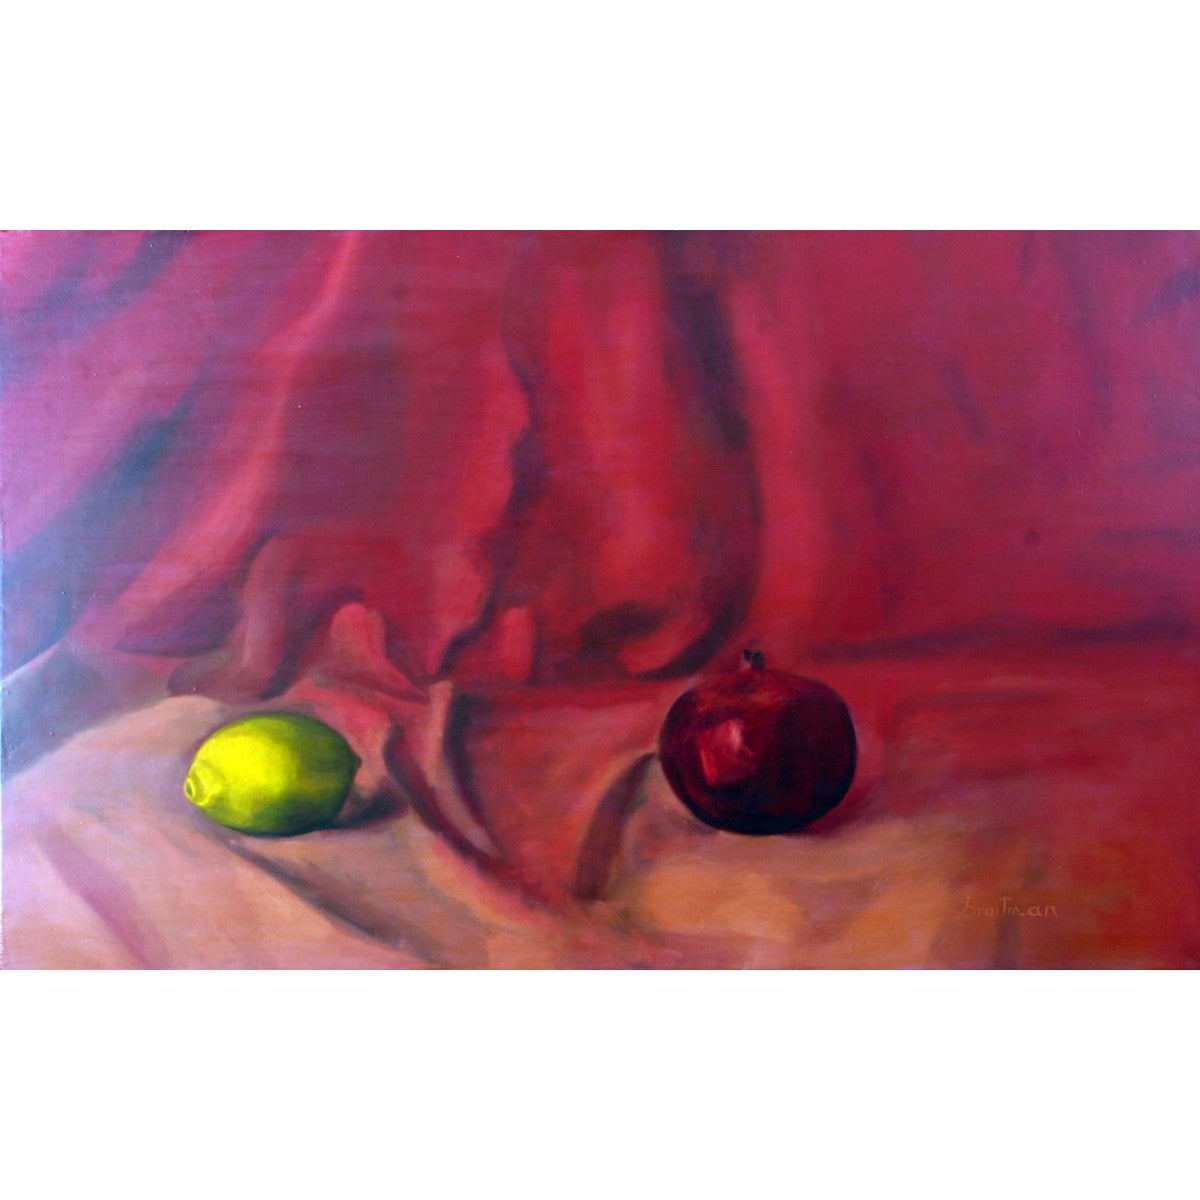 Pomegranate and Lemon by Yehuda Broitman